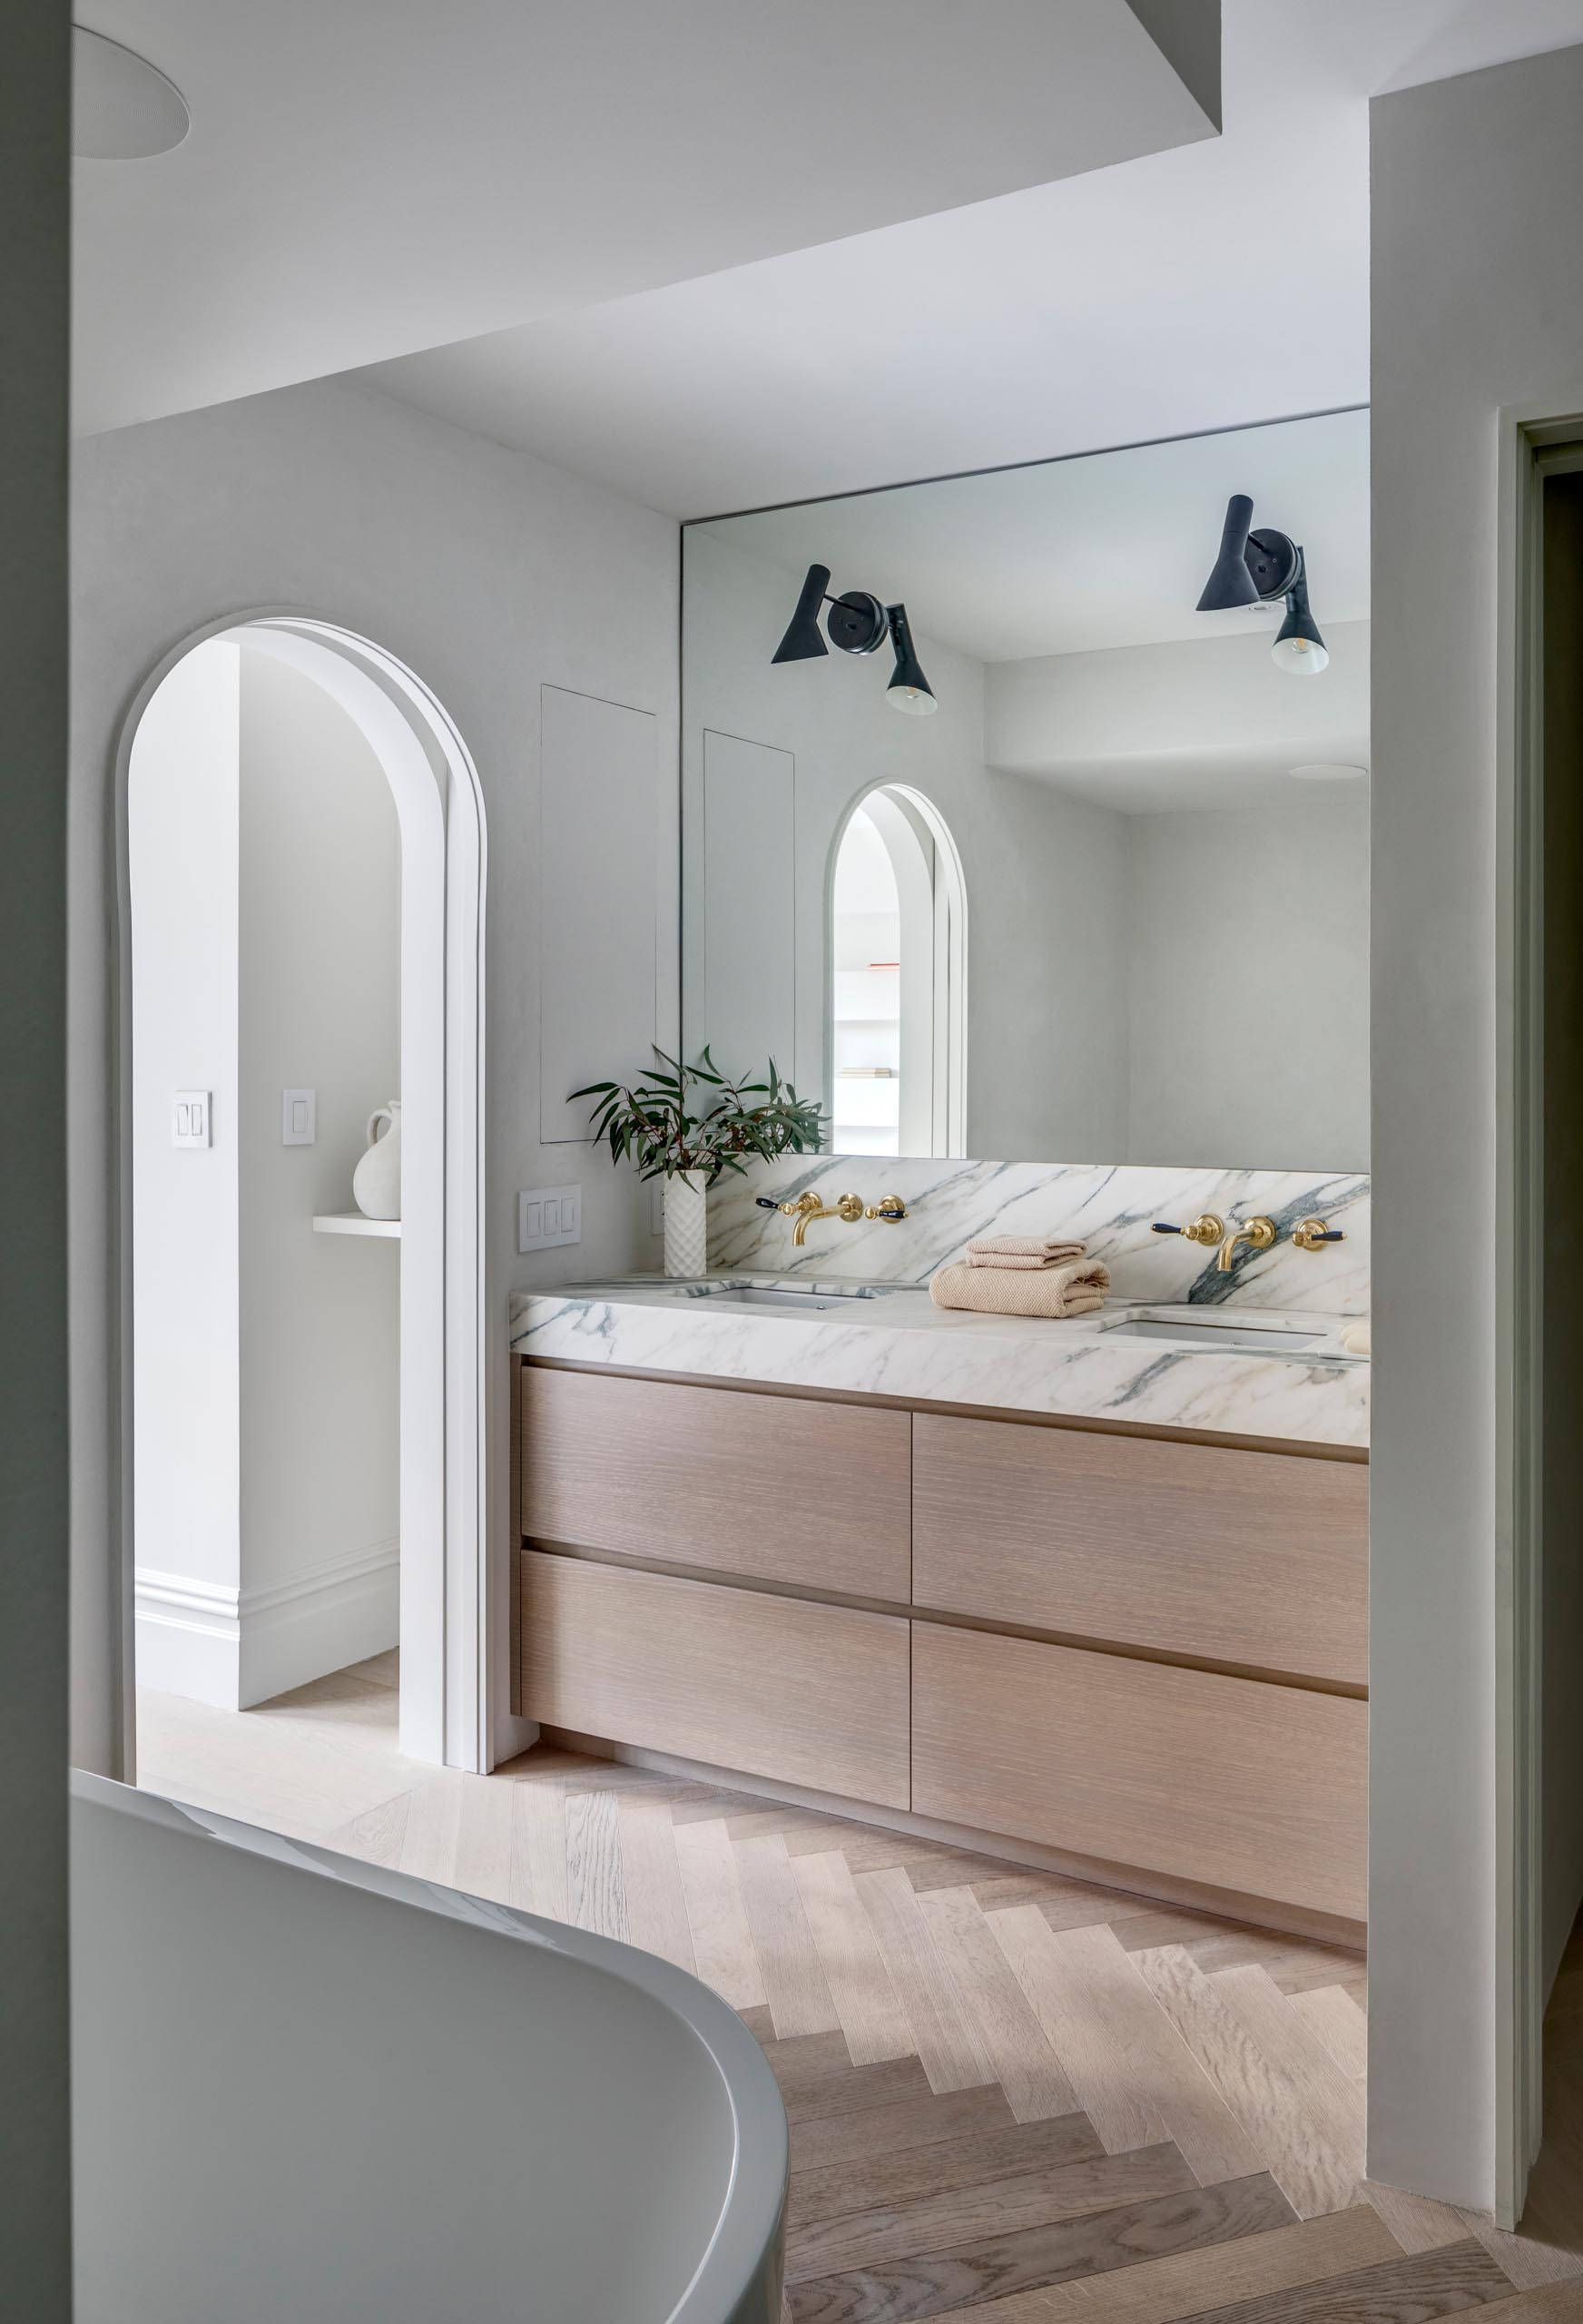 A modern master bathroom with an arched doorway, a wood and marble vanity, and a wood floor laid in a herringbone pattern.